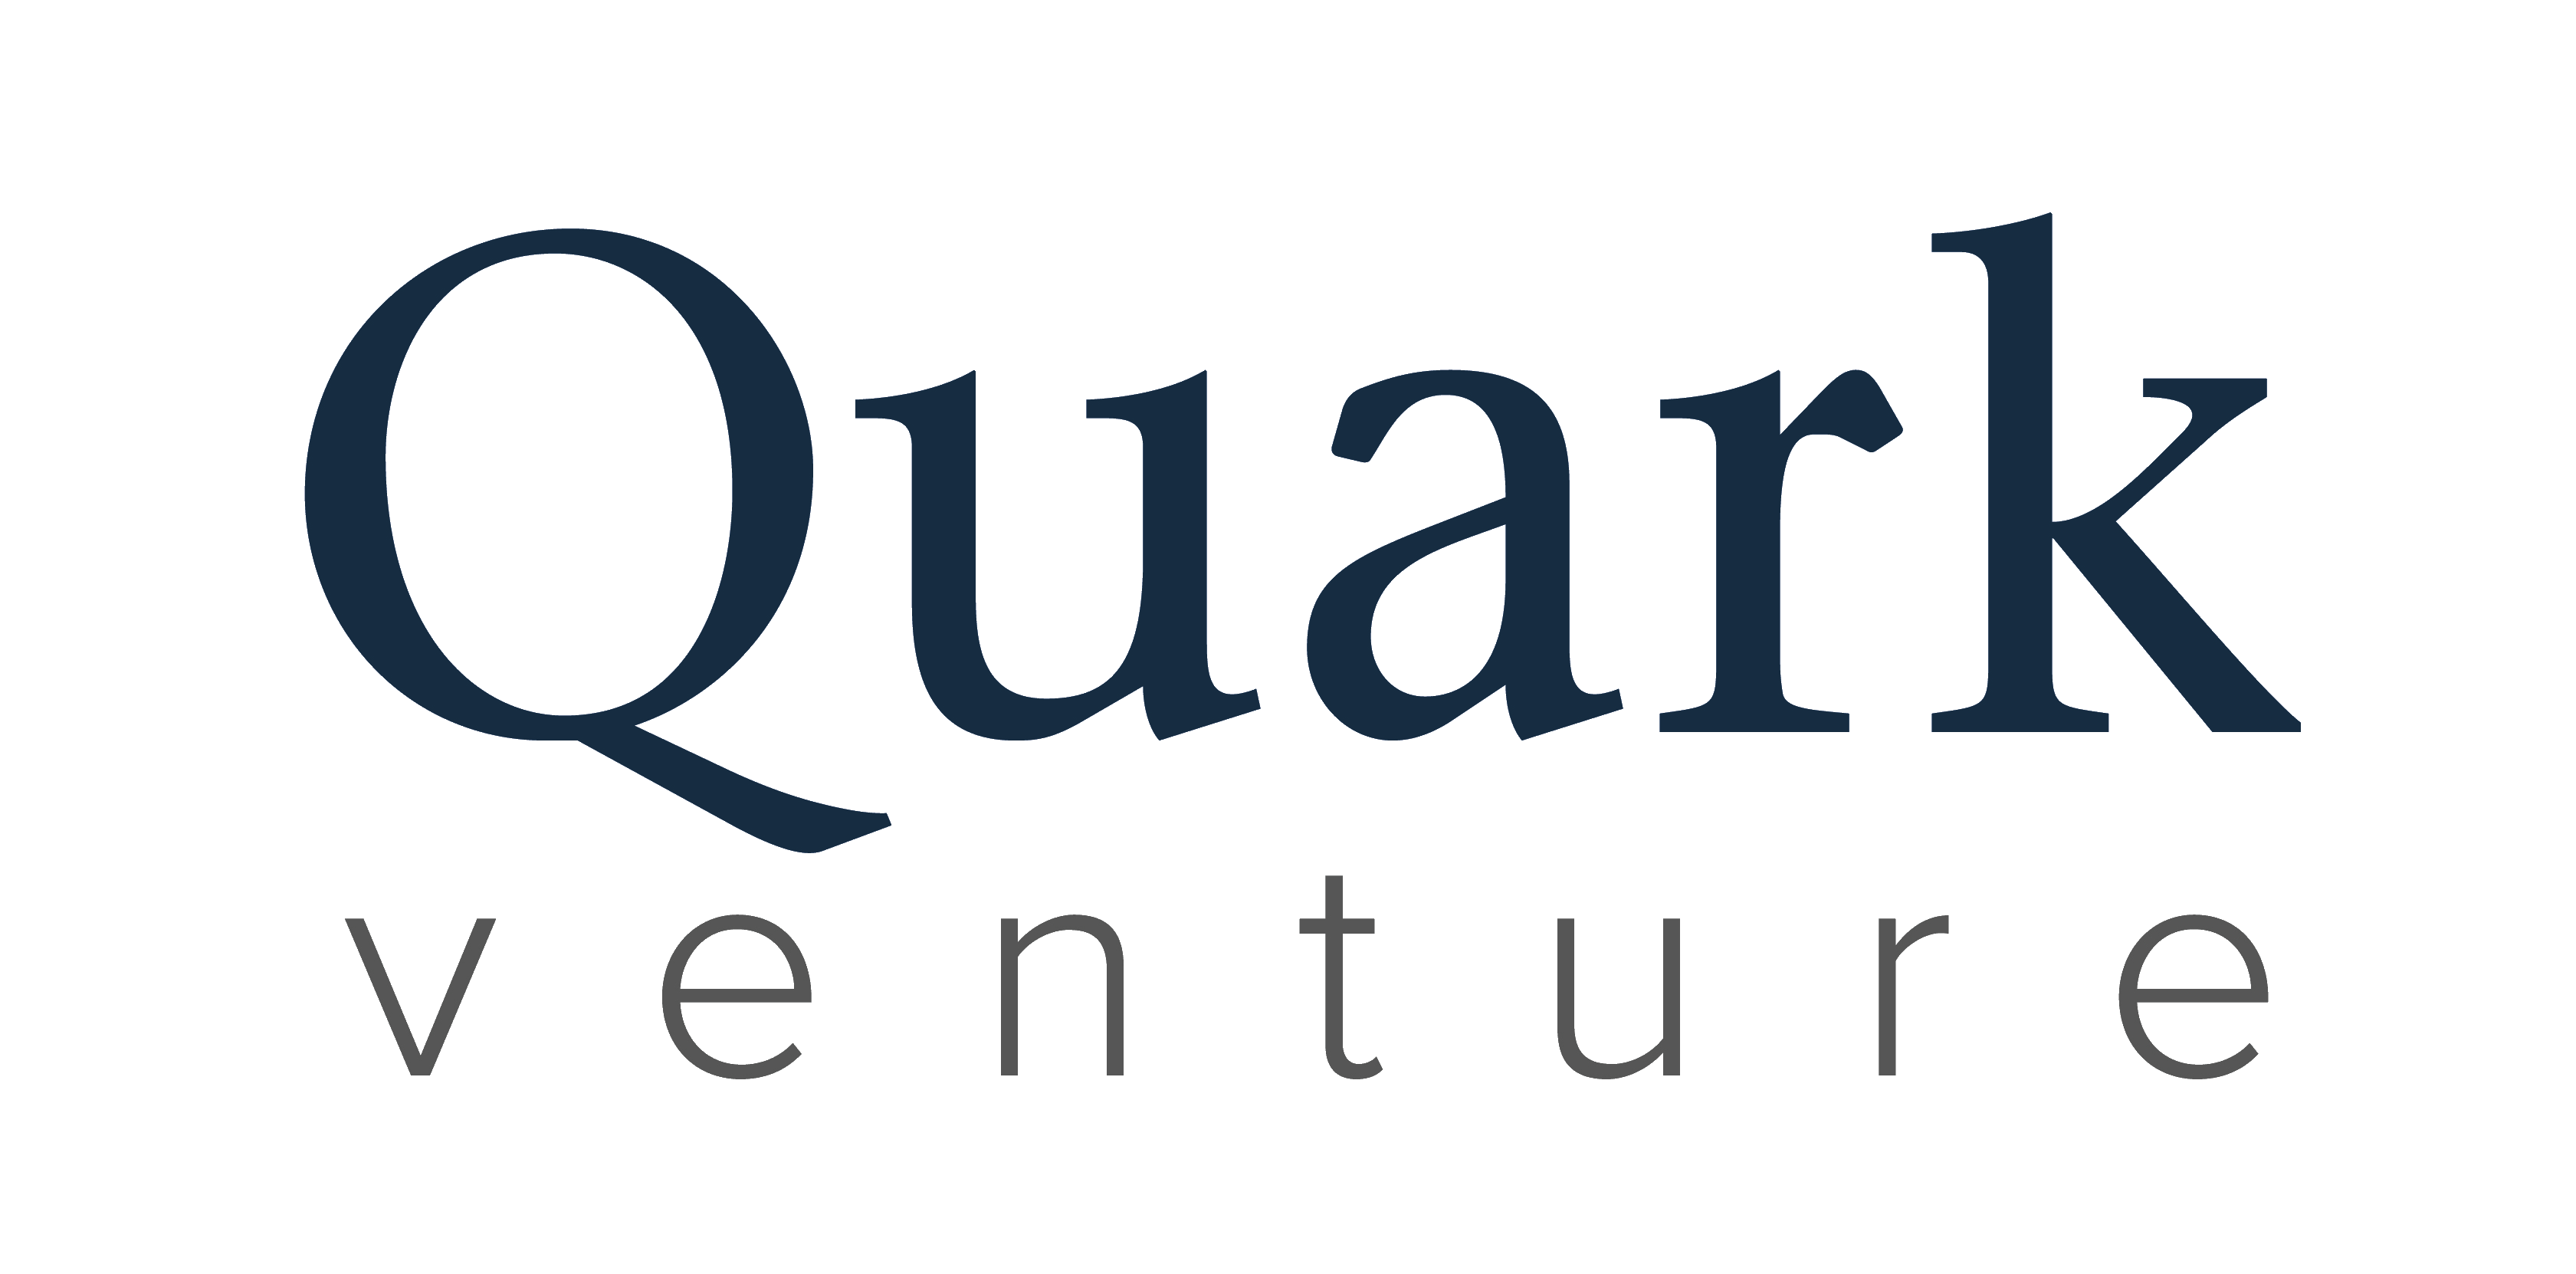 Global Health Sciences Fund (Quark Venture LP and GF Securities) Contributes to Volastra Therapeutics' $12 Million Seed Financing for Company's Development of Novel Metastatic Cancer Therapies